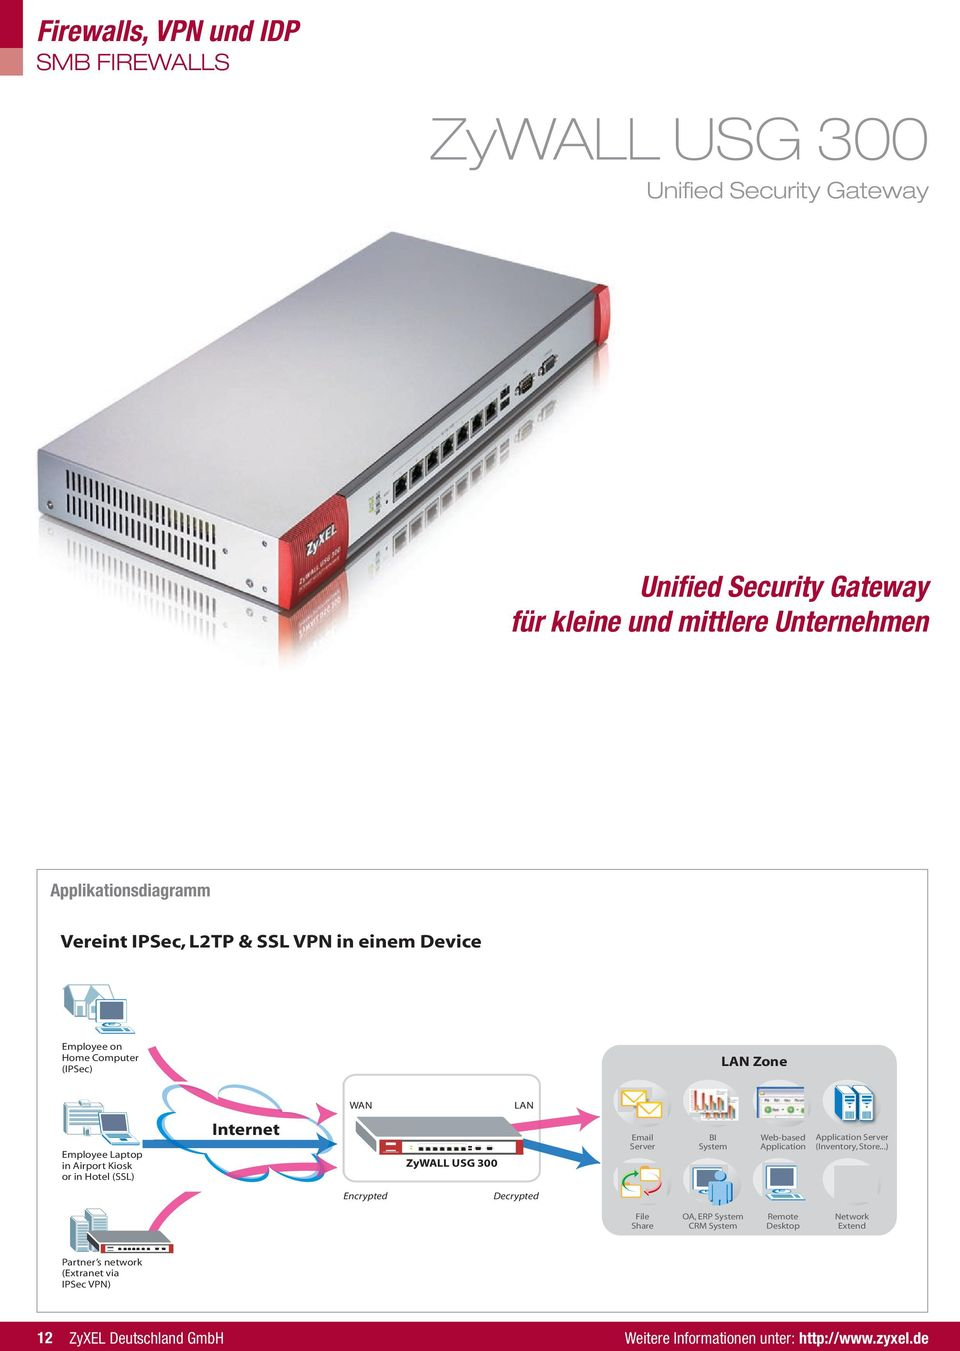 in Hotel (SSL) Internet ZyWALL USG 300 Email Server BI System Web-based Application Application Server (Inventory, Store.